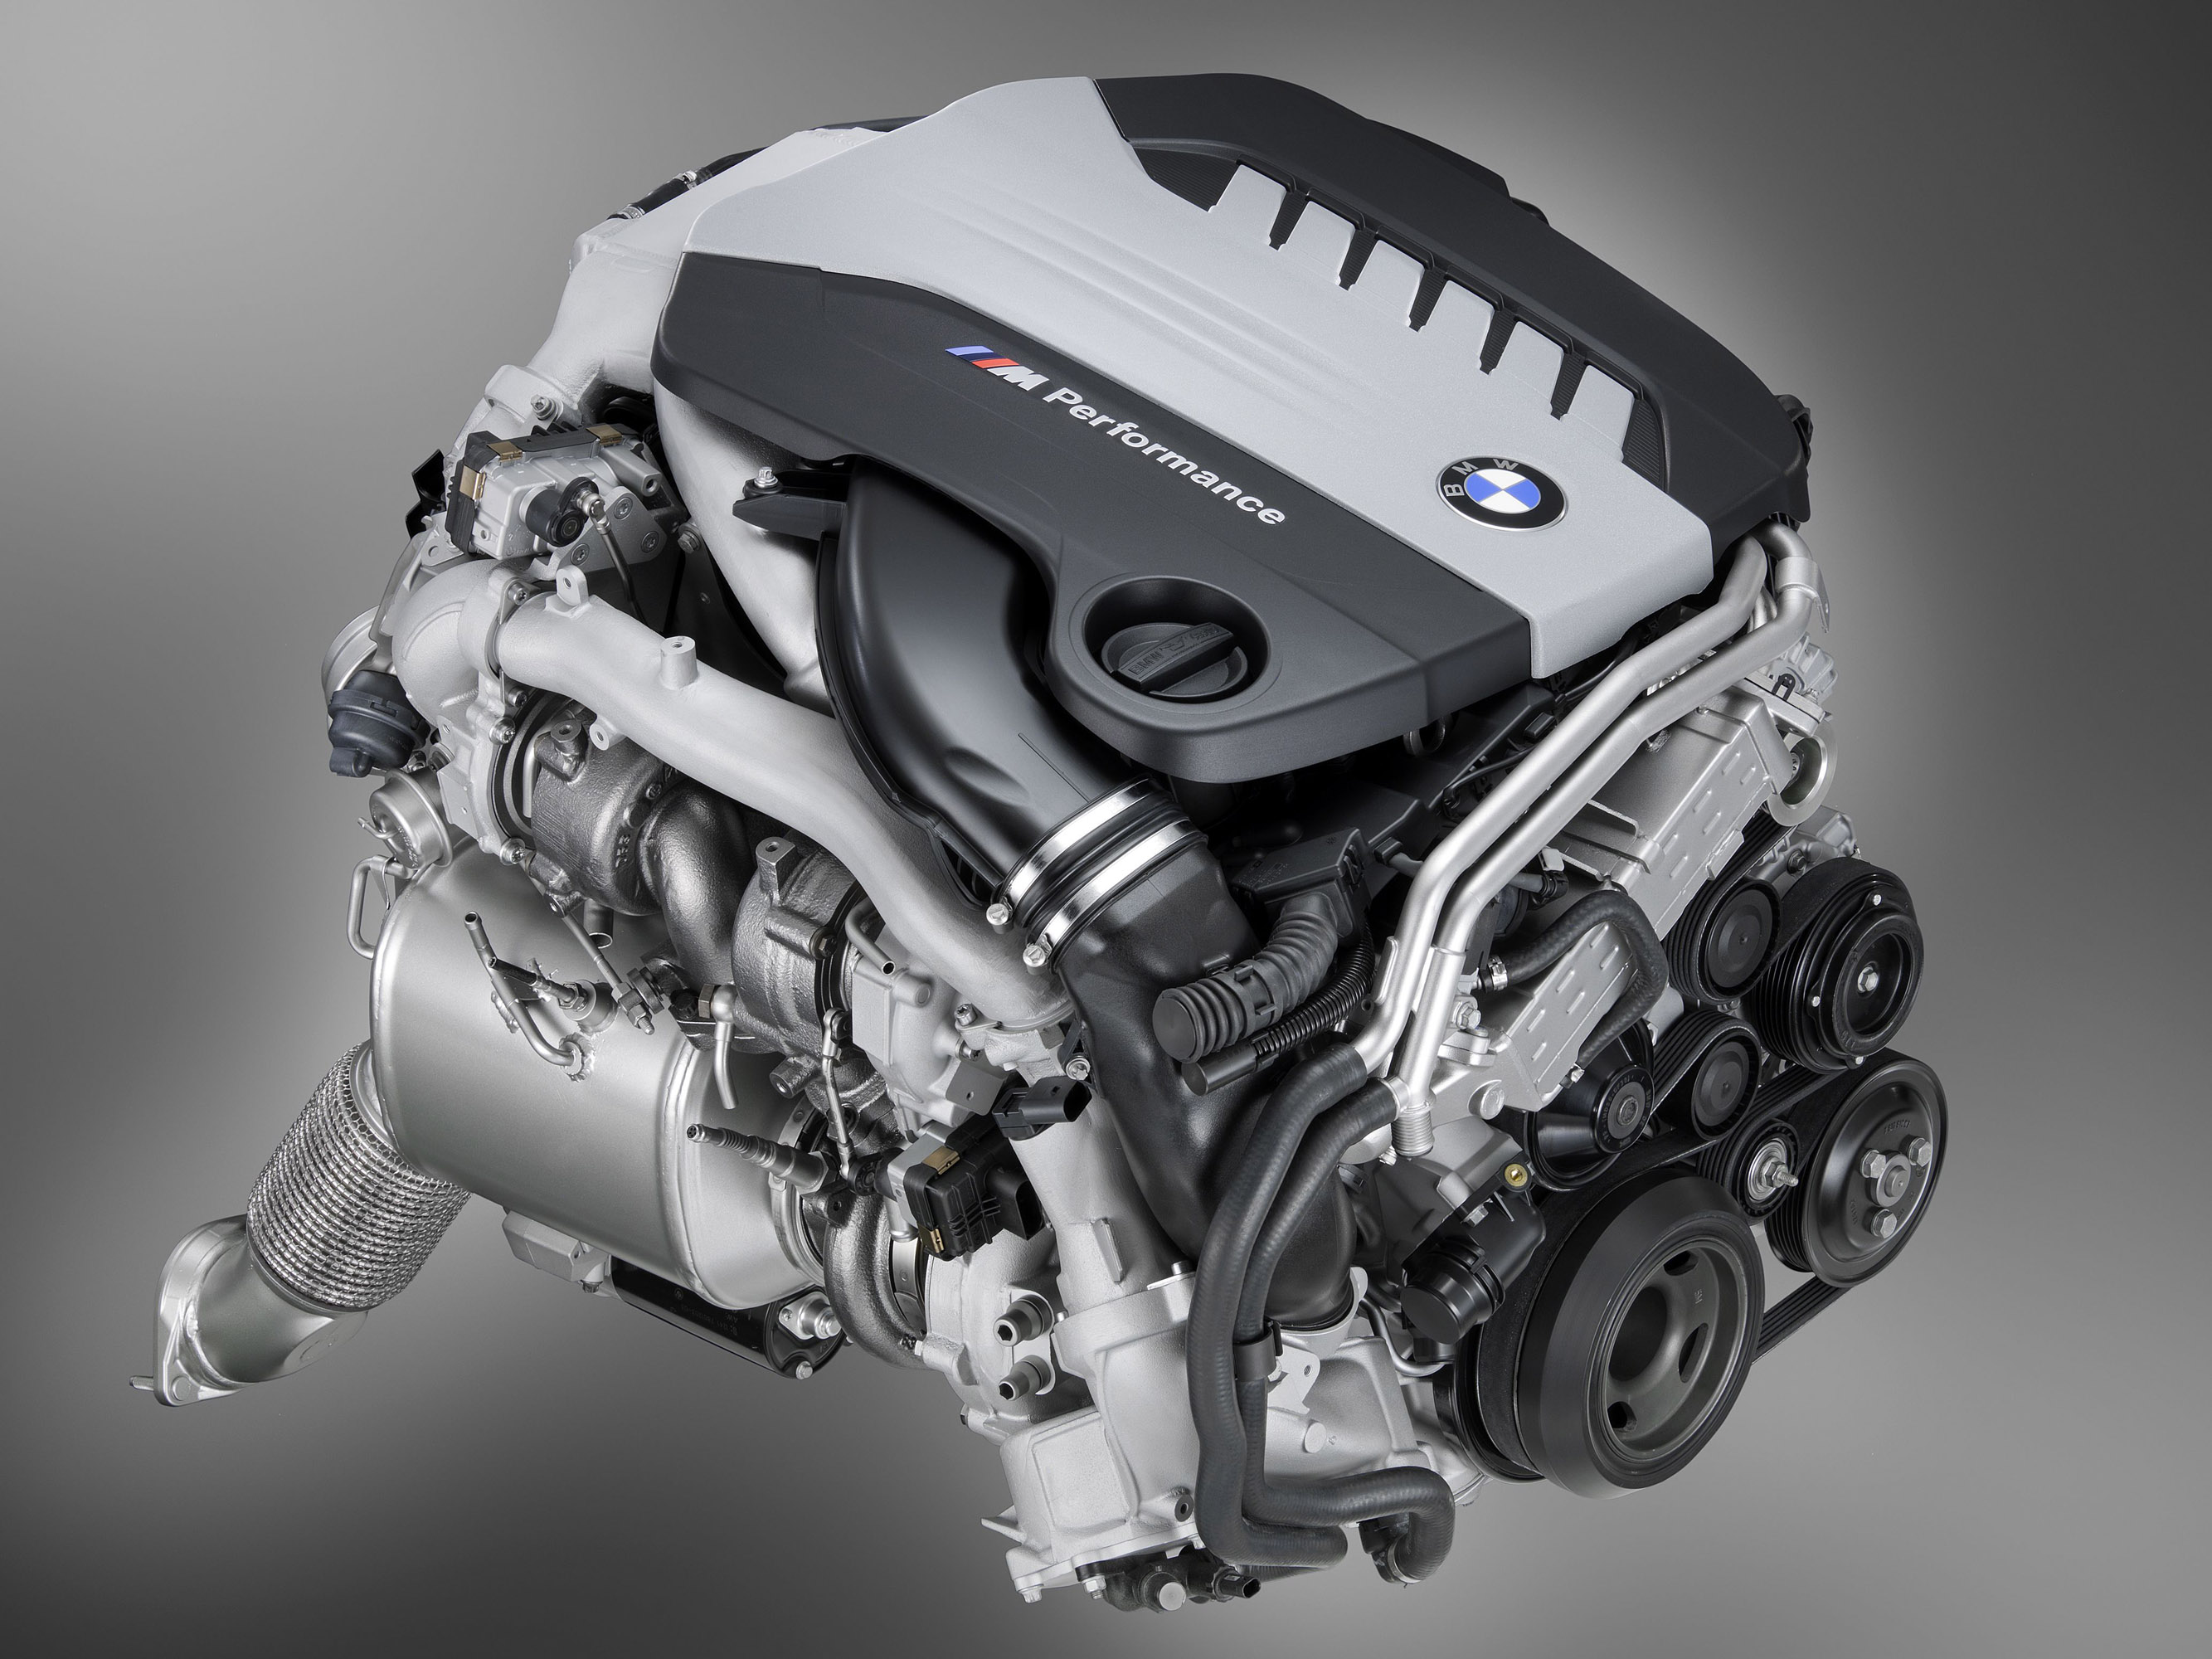 BMW Diesel Software: Official statement on the N57 engine